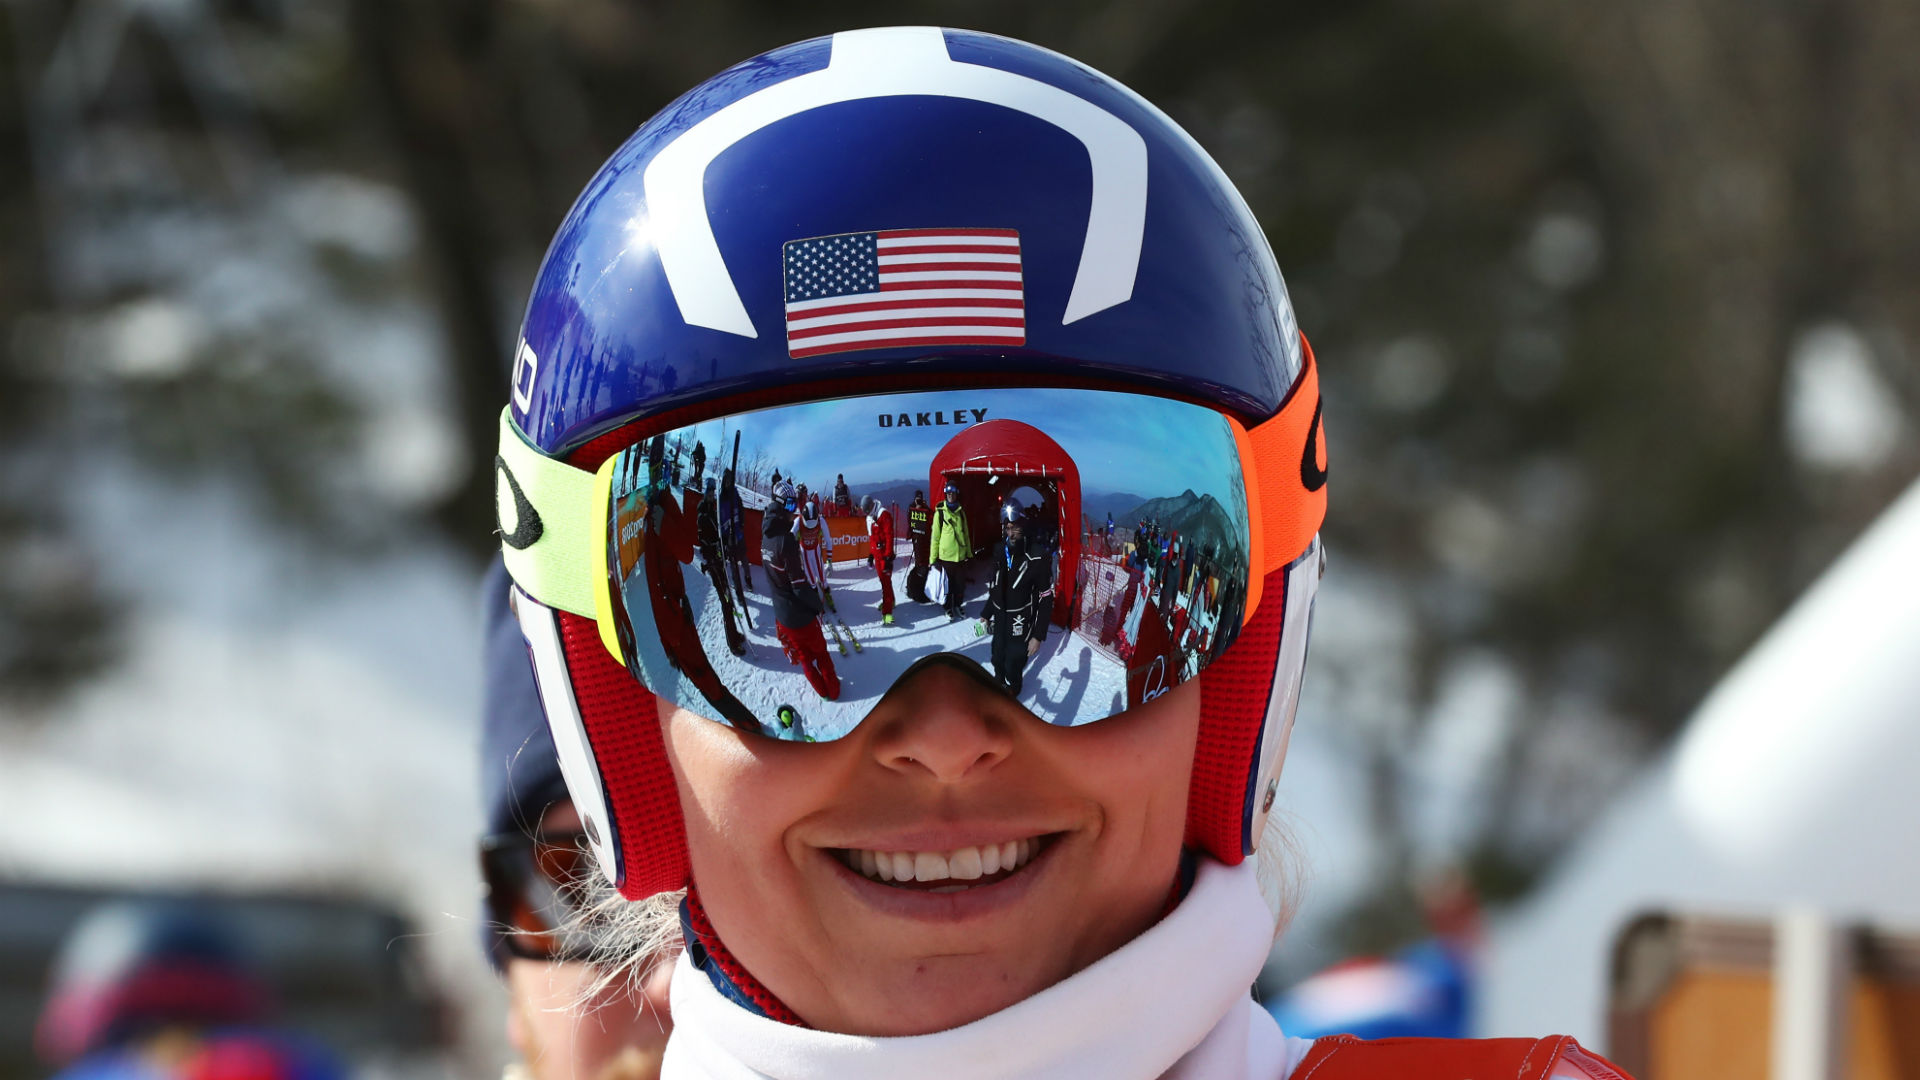 Emotional Vonn says 'everything hurts' after Olympic downhill bronze